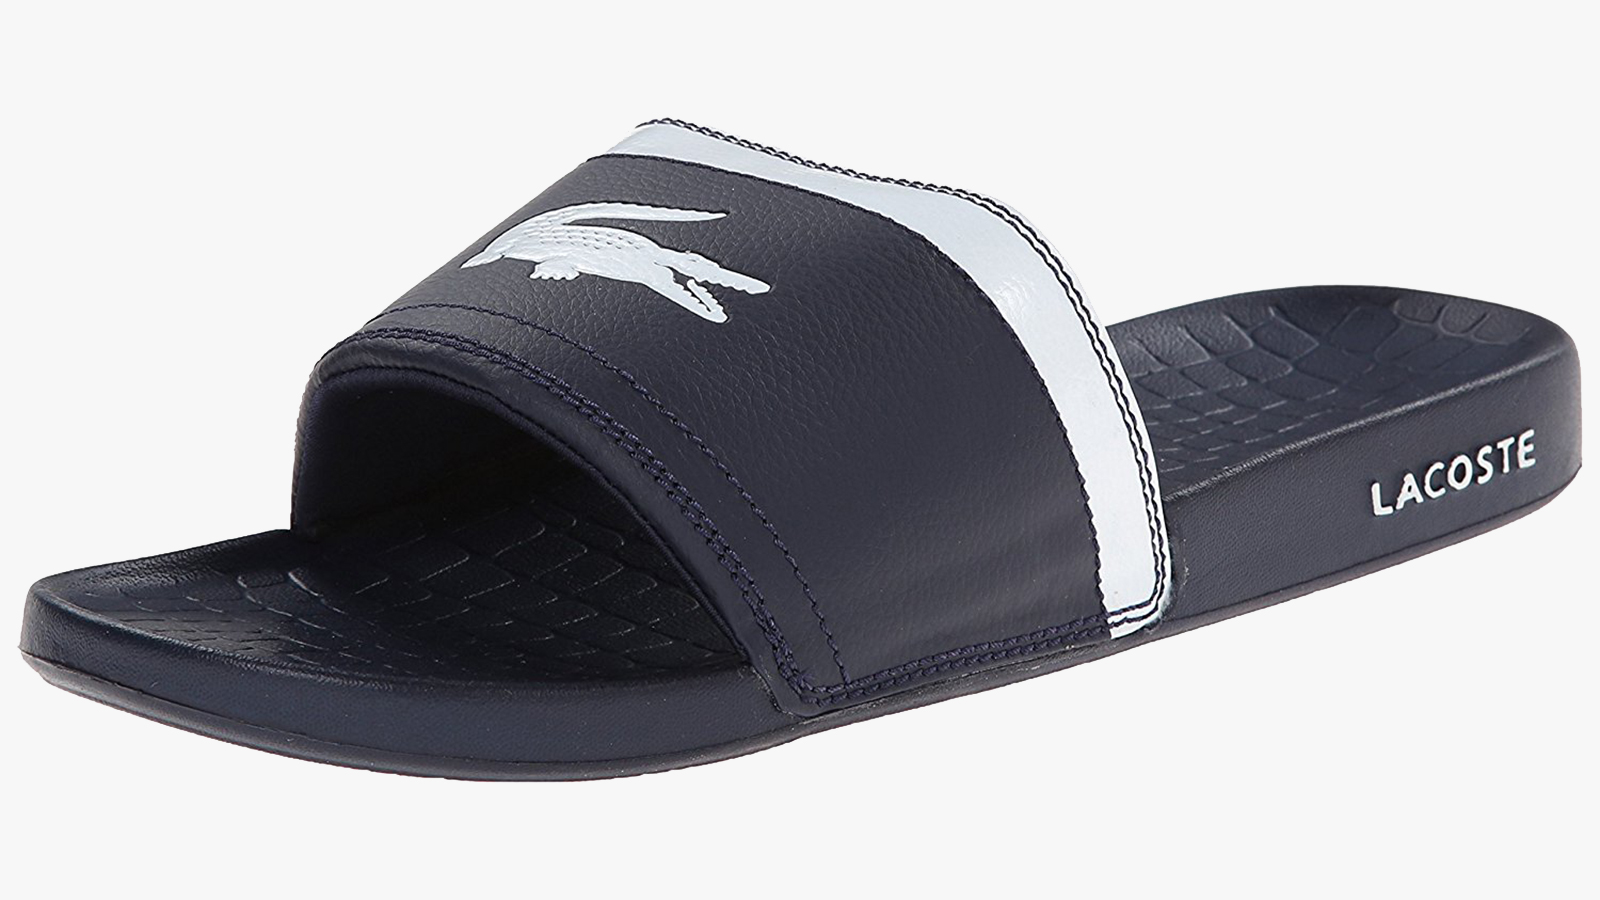 Lacoste Fraiser BRD1 Best Men's Slides